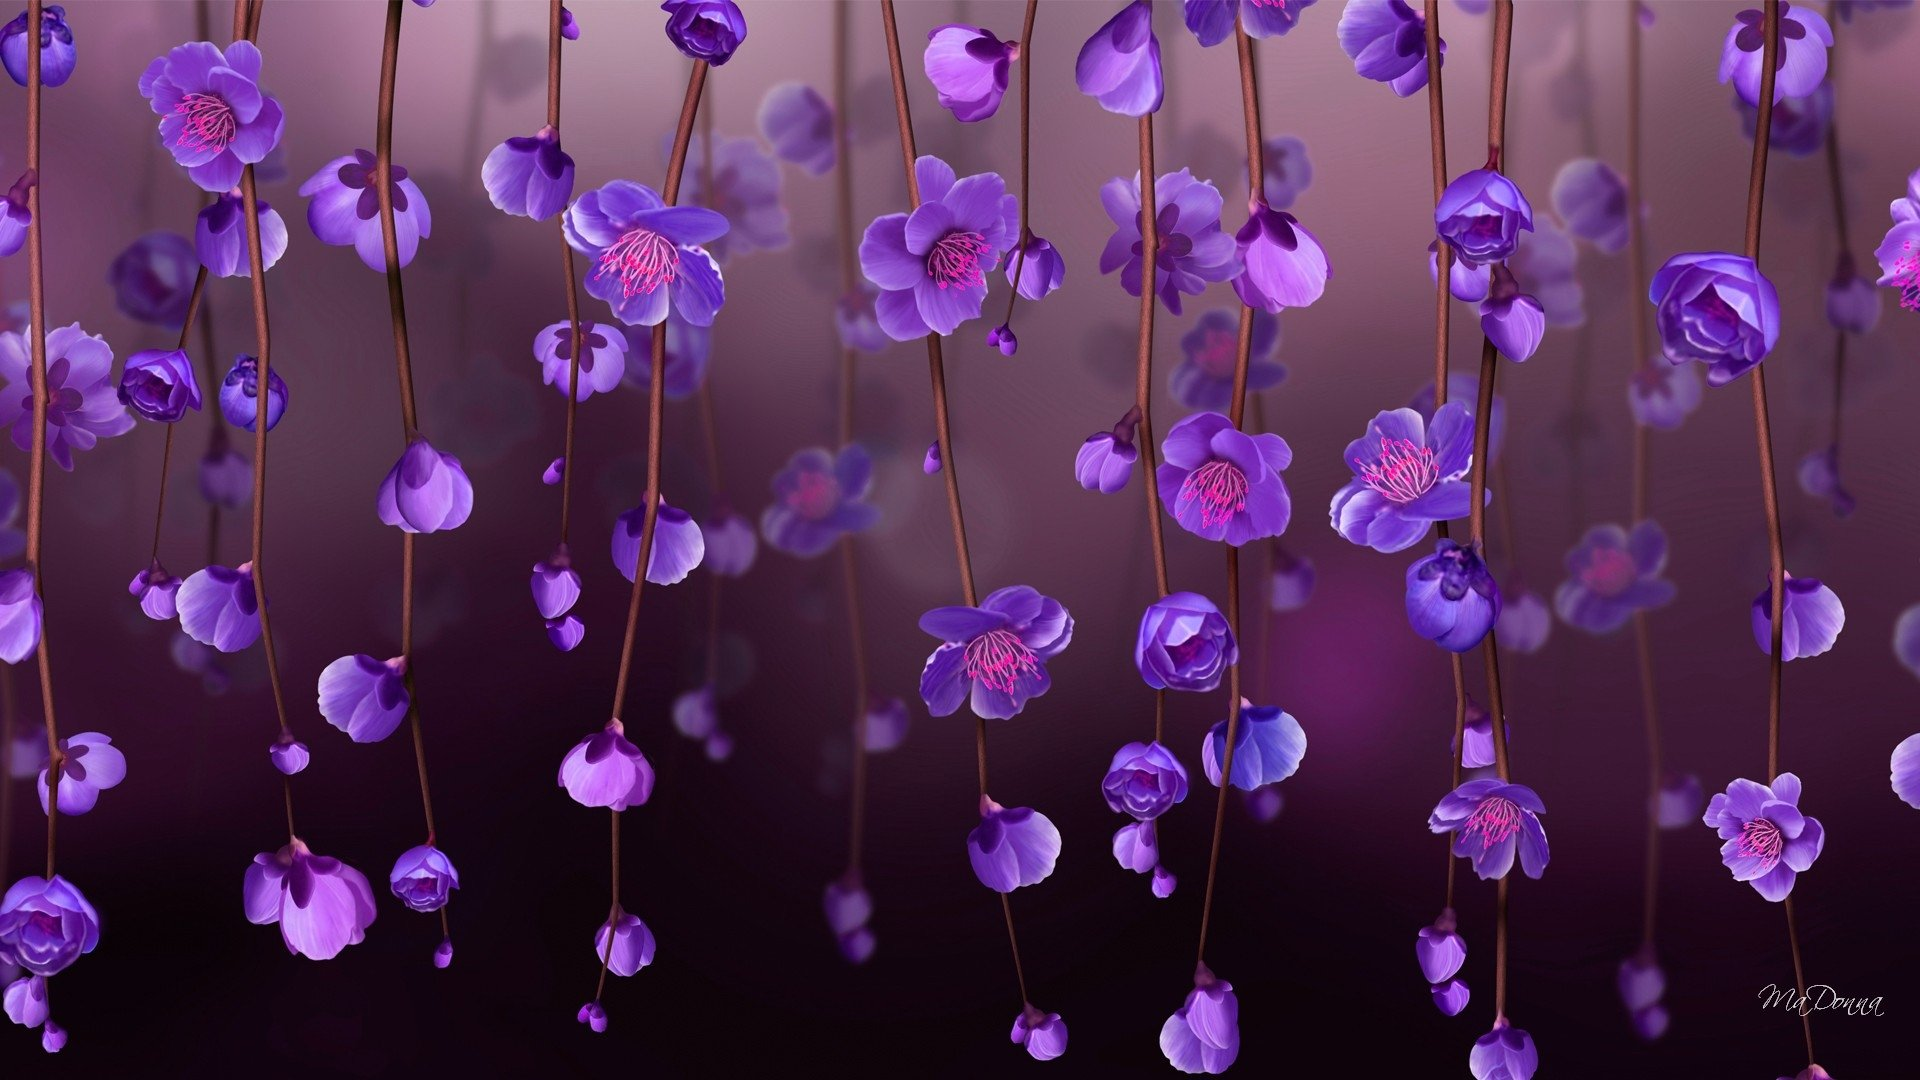 Earth - Blossom  Artistic Flower Purple Flower Vine Wallpaper